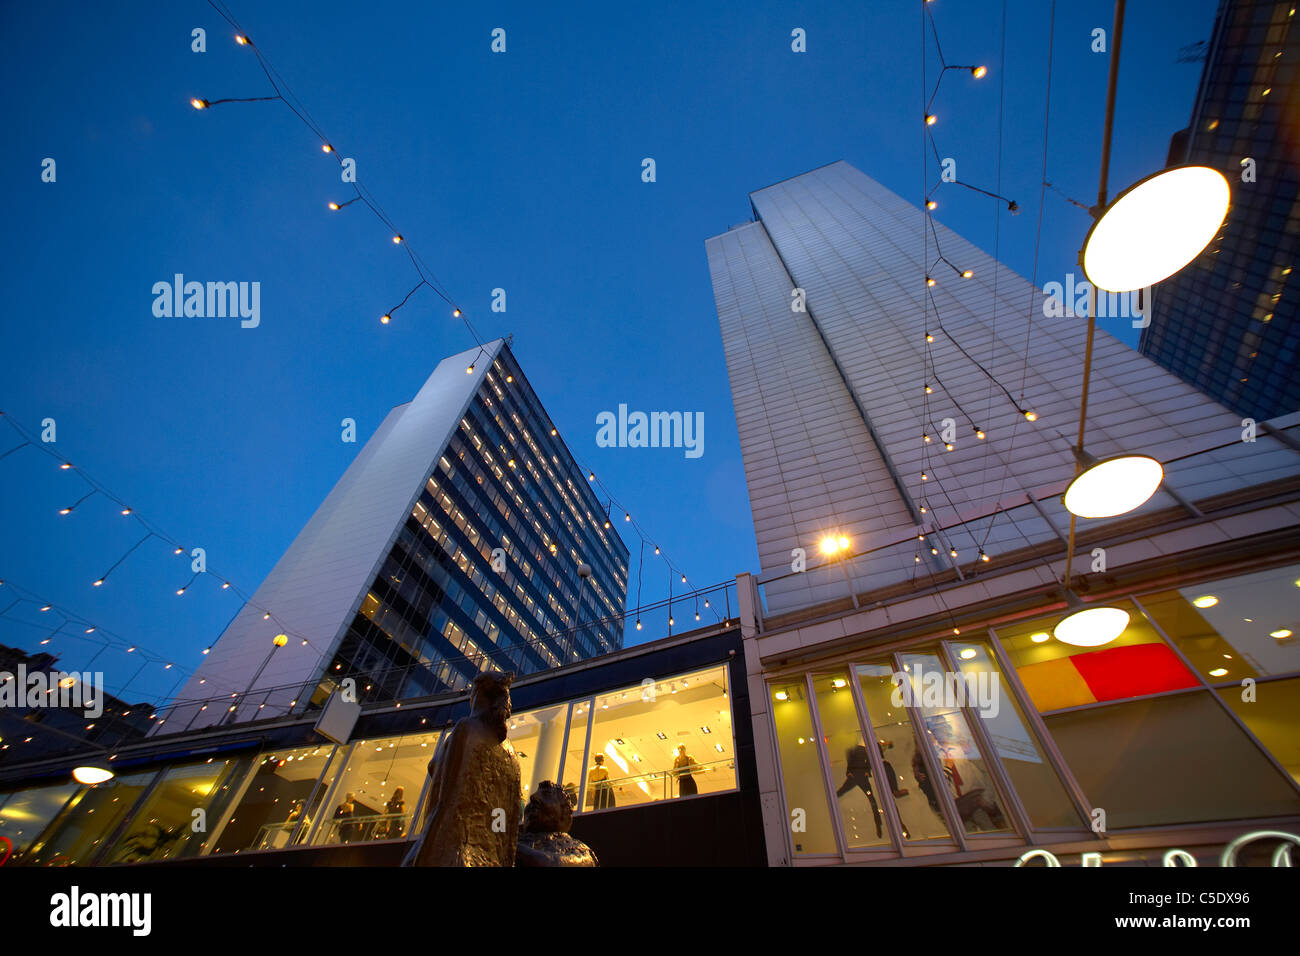 Low angle view of skyscrapers with hanging lights against blue sky in Stockholm, Sweden Stock Photo